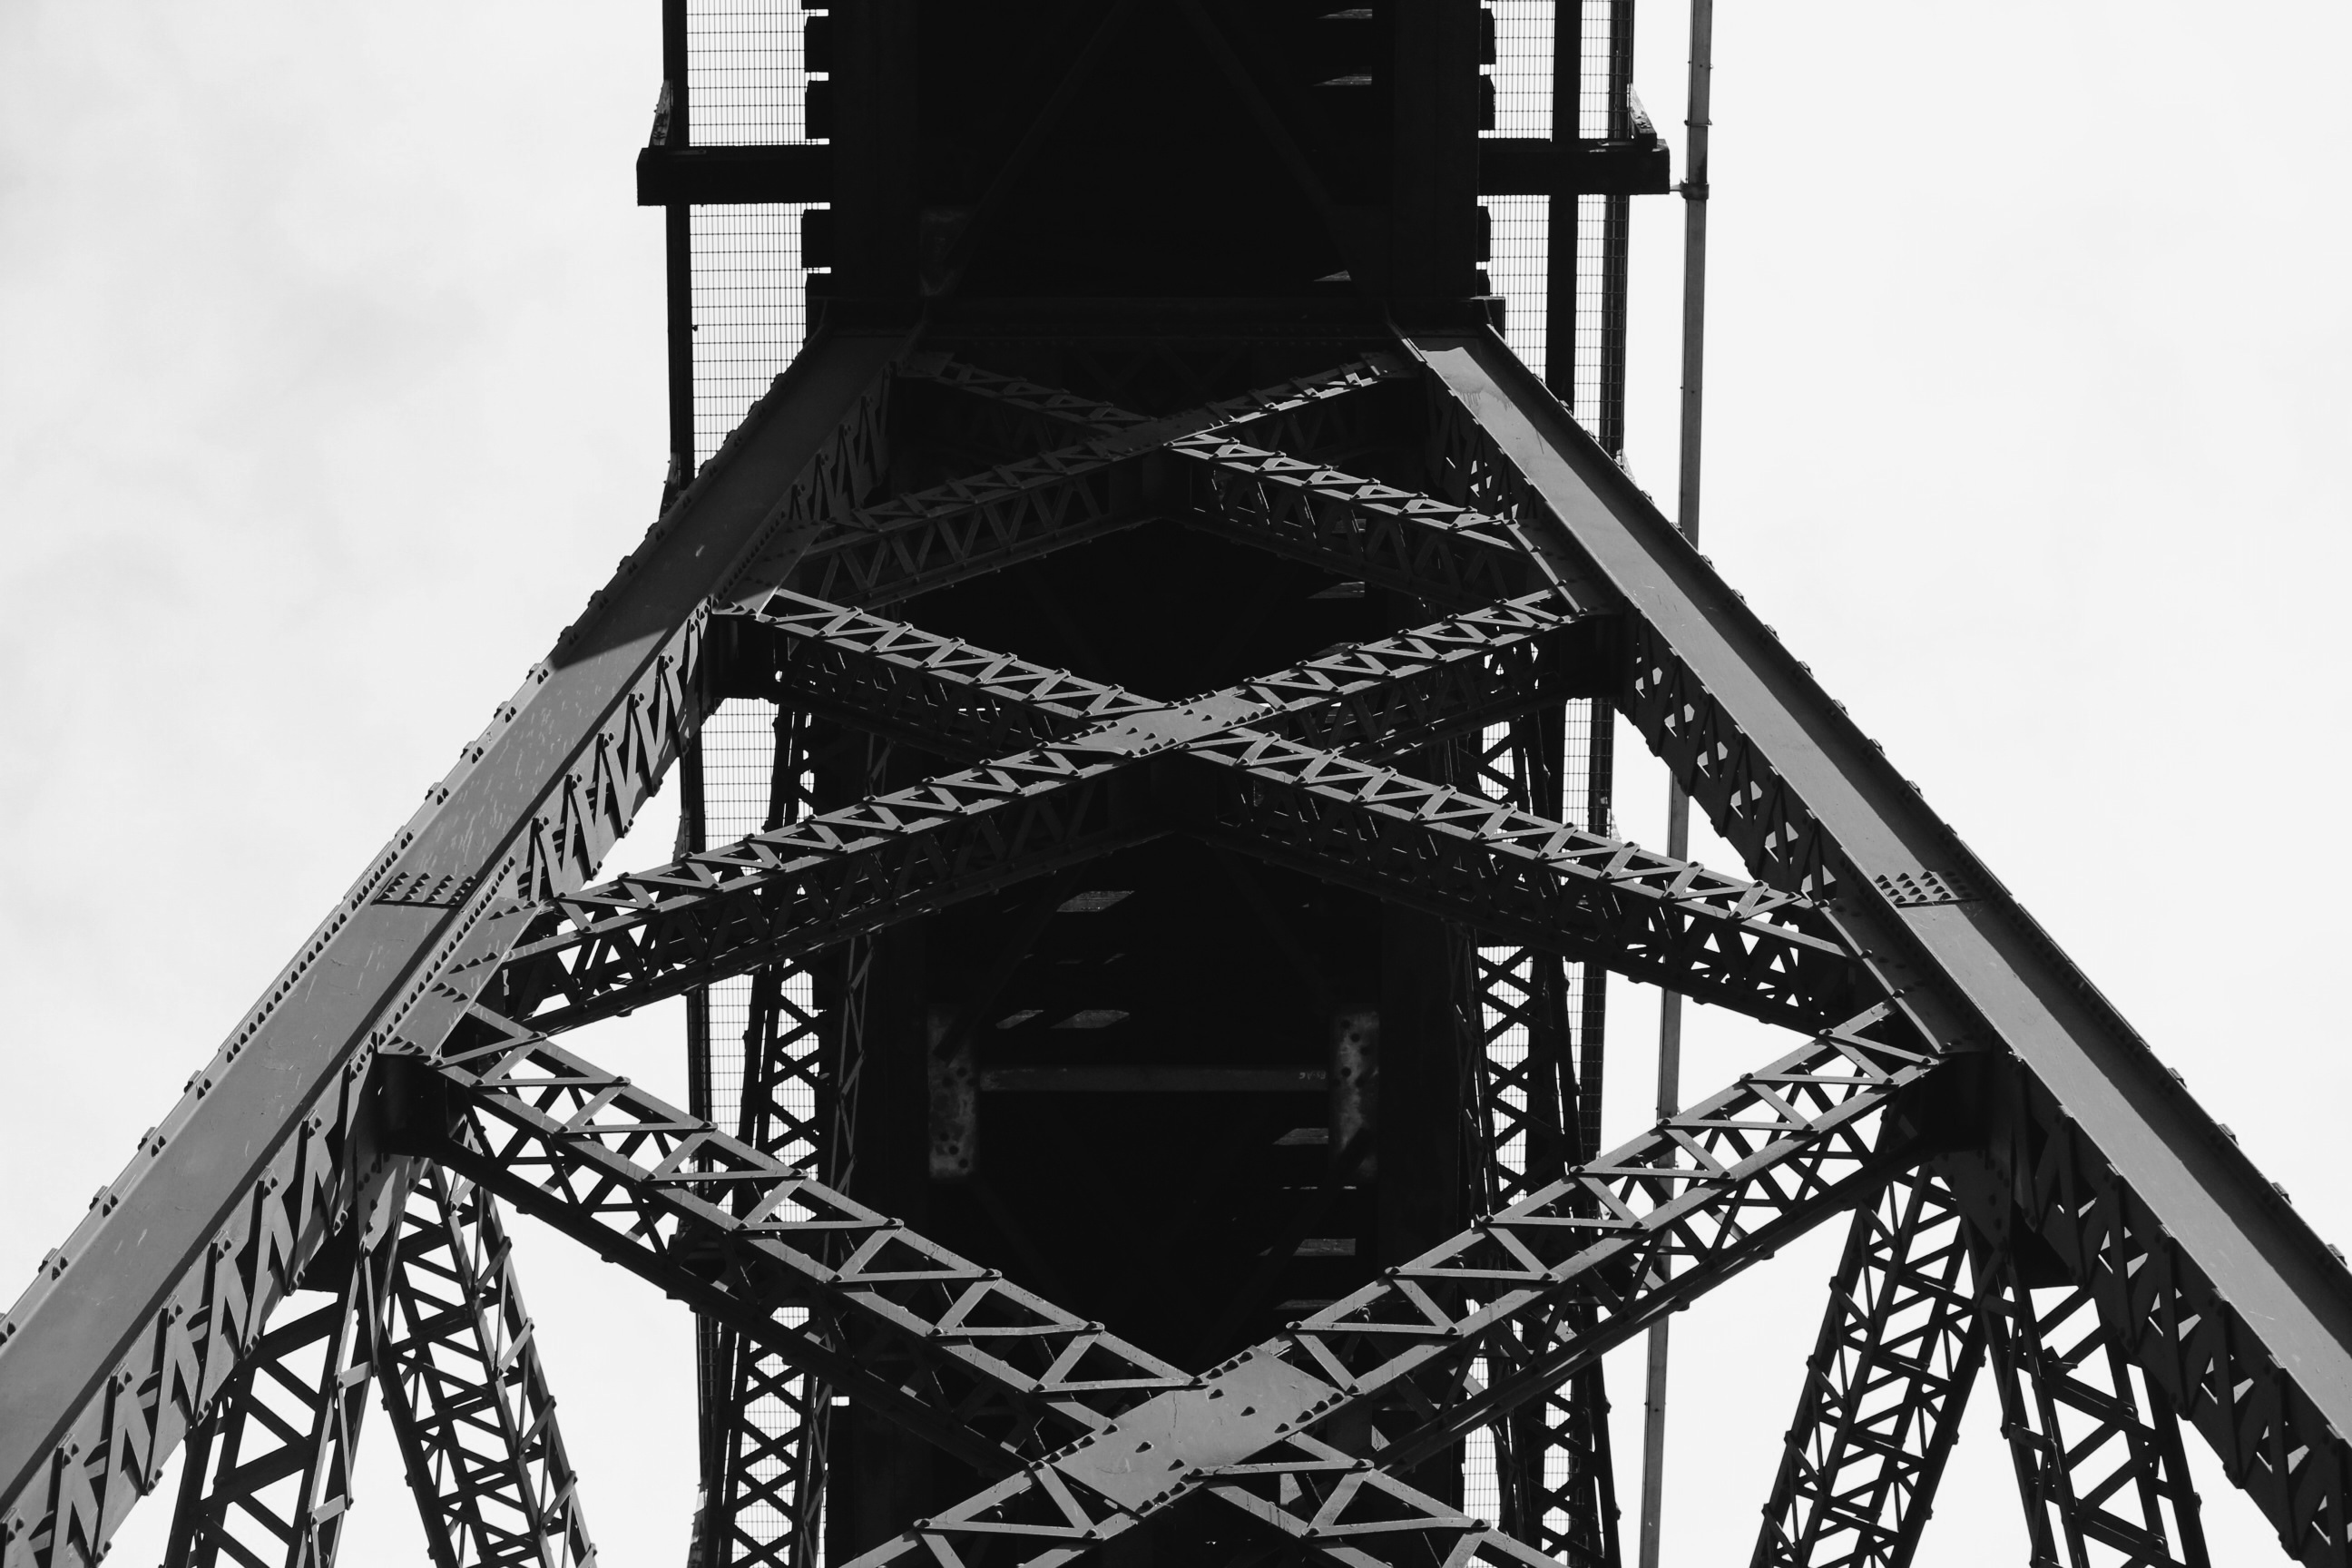 Metal, Steel, Heavy, Bridge, Construction, HQ Photo